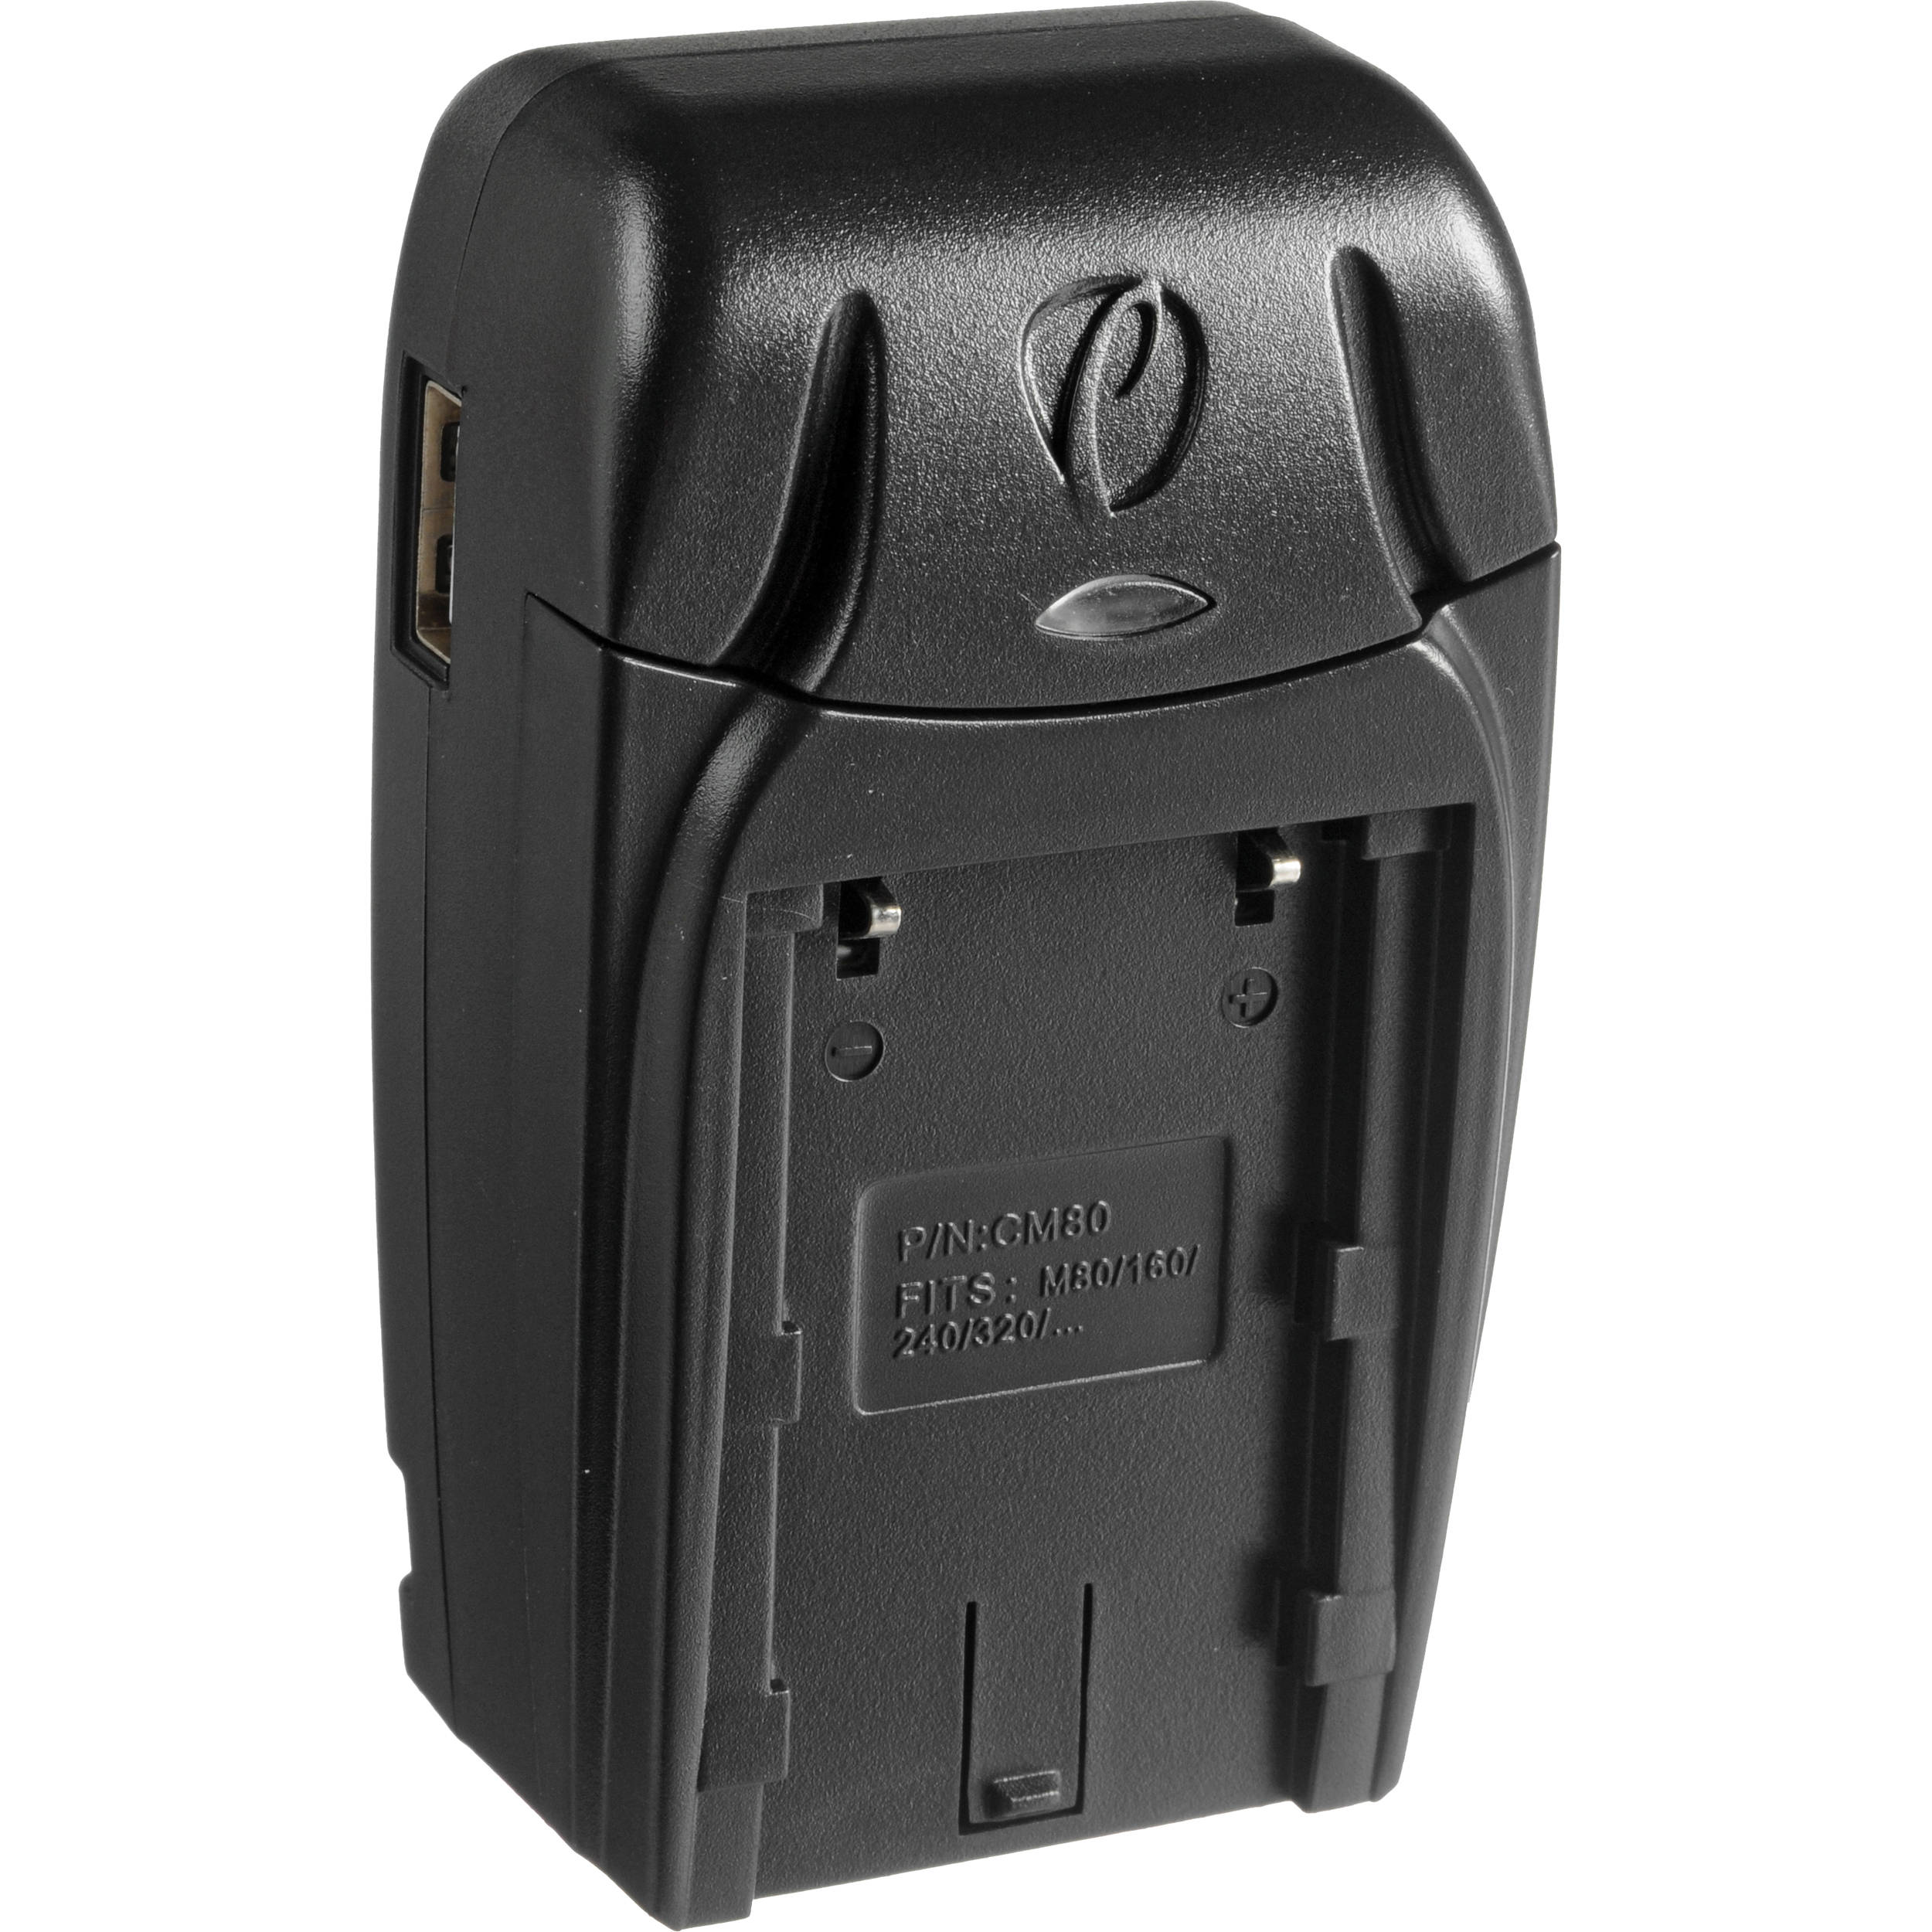 10f290baed1e Pearstone Compact AC/DC Battery Charger for Samsung SB-LSM80 / LSM160